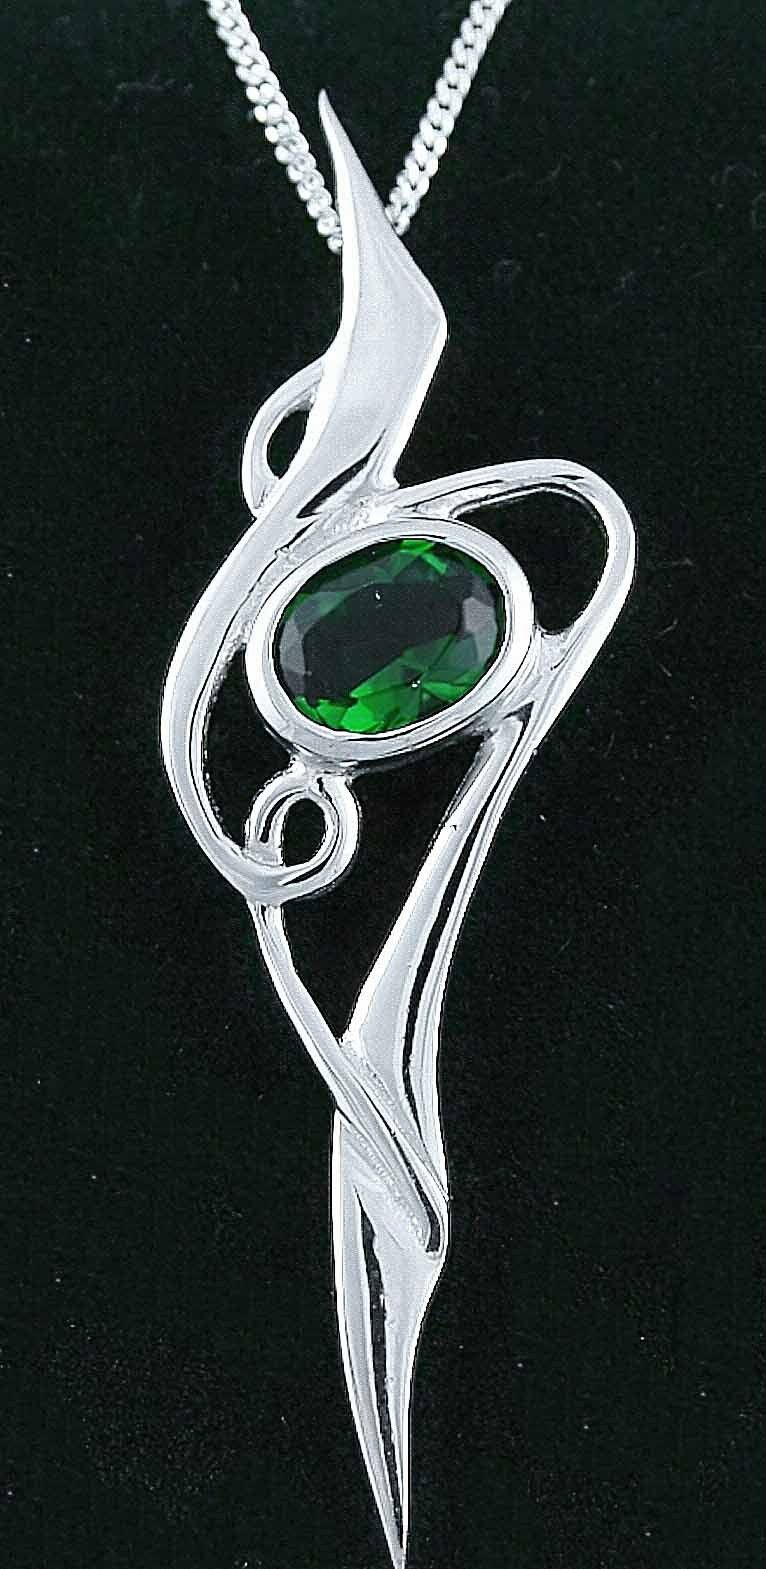 14k white gold solid silver emerald celtic pendant necklace 14k white gold solid silver emerald celtic pendant necklace necklaces celtic jewellery aloadofball Choice Image